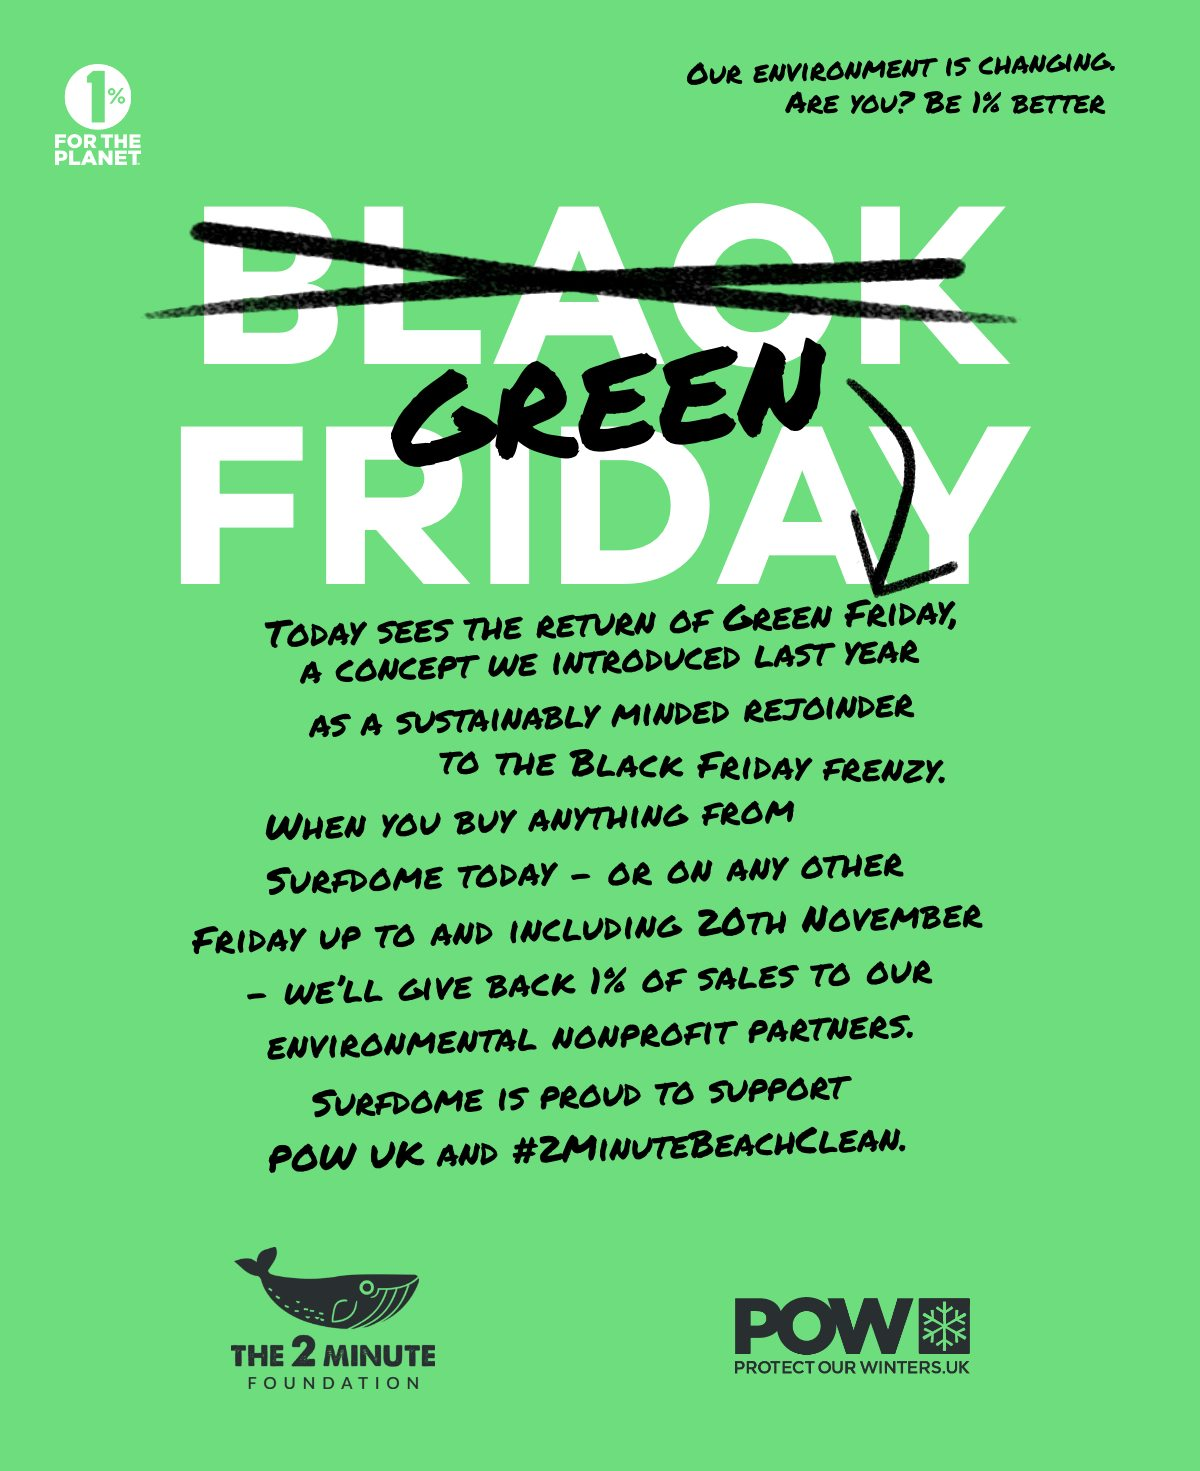 Green Friday | Find out more